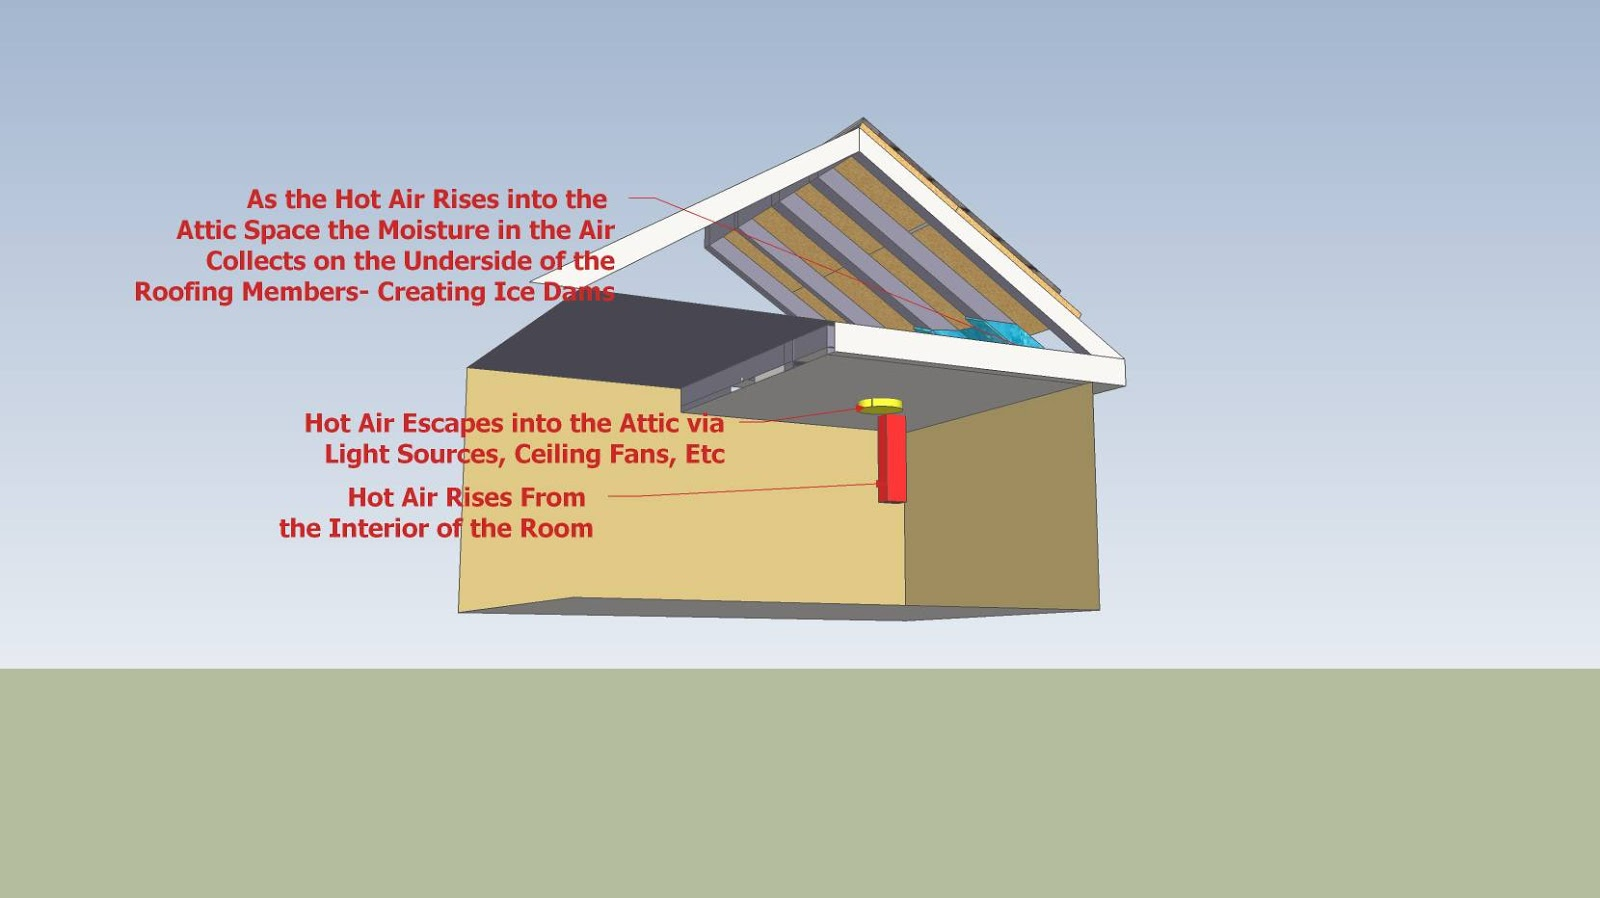 Why is there ICE in my Attic and where did it come from? – Scotts Design Ice Cad Houses on technical drawing and design, manufacturing house design, japanese tea house design, support structure design, radiant heating installation and design, business house design, fab house design, solidworks house design, building structure design, engineering house design, architecture house design, classic house design, google sketchup house design, autocad 3d design, house structure design, cnc house design, box structure design, art house design, top house design, 2d house design,